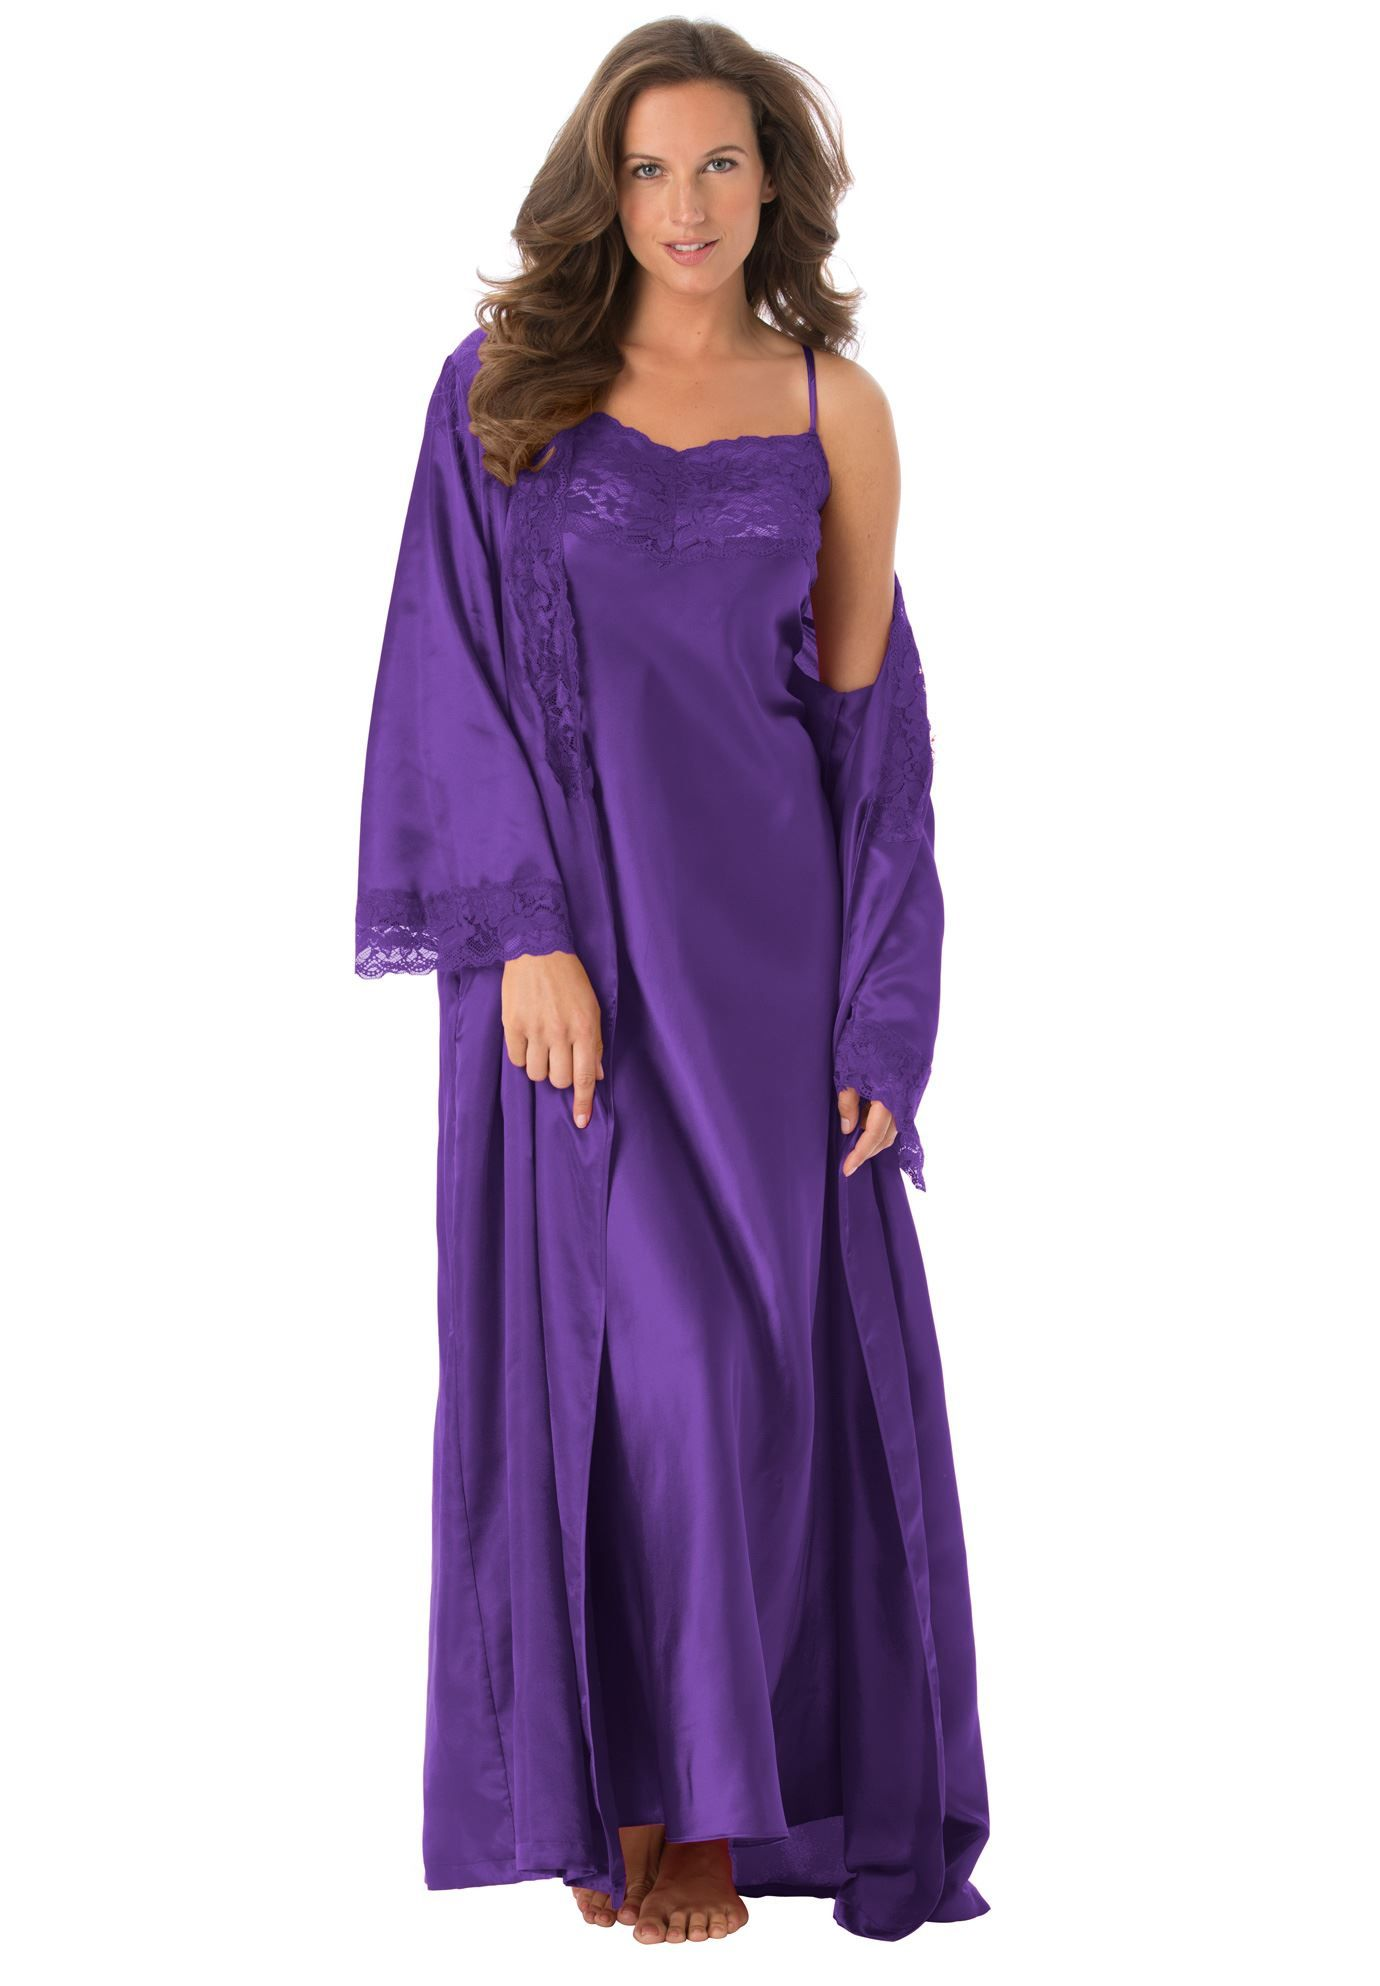 Long Satin Peignoir Set By Amoureuse Plus Size Nighties Woman Within Night Gown Peignoir Sets Plus Size Sleepwear